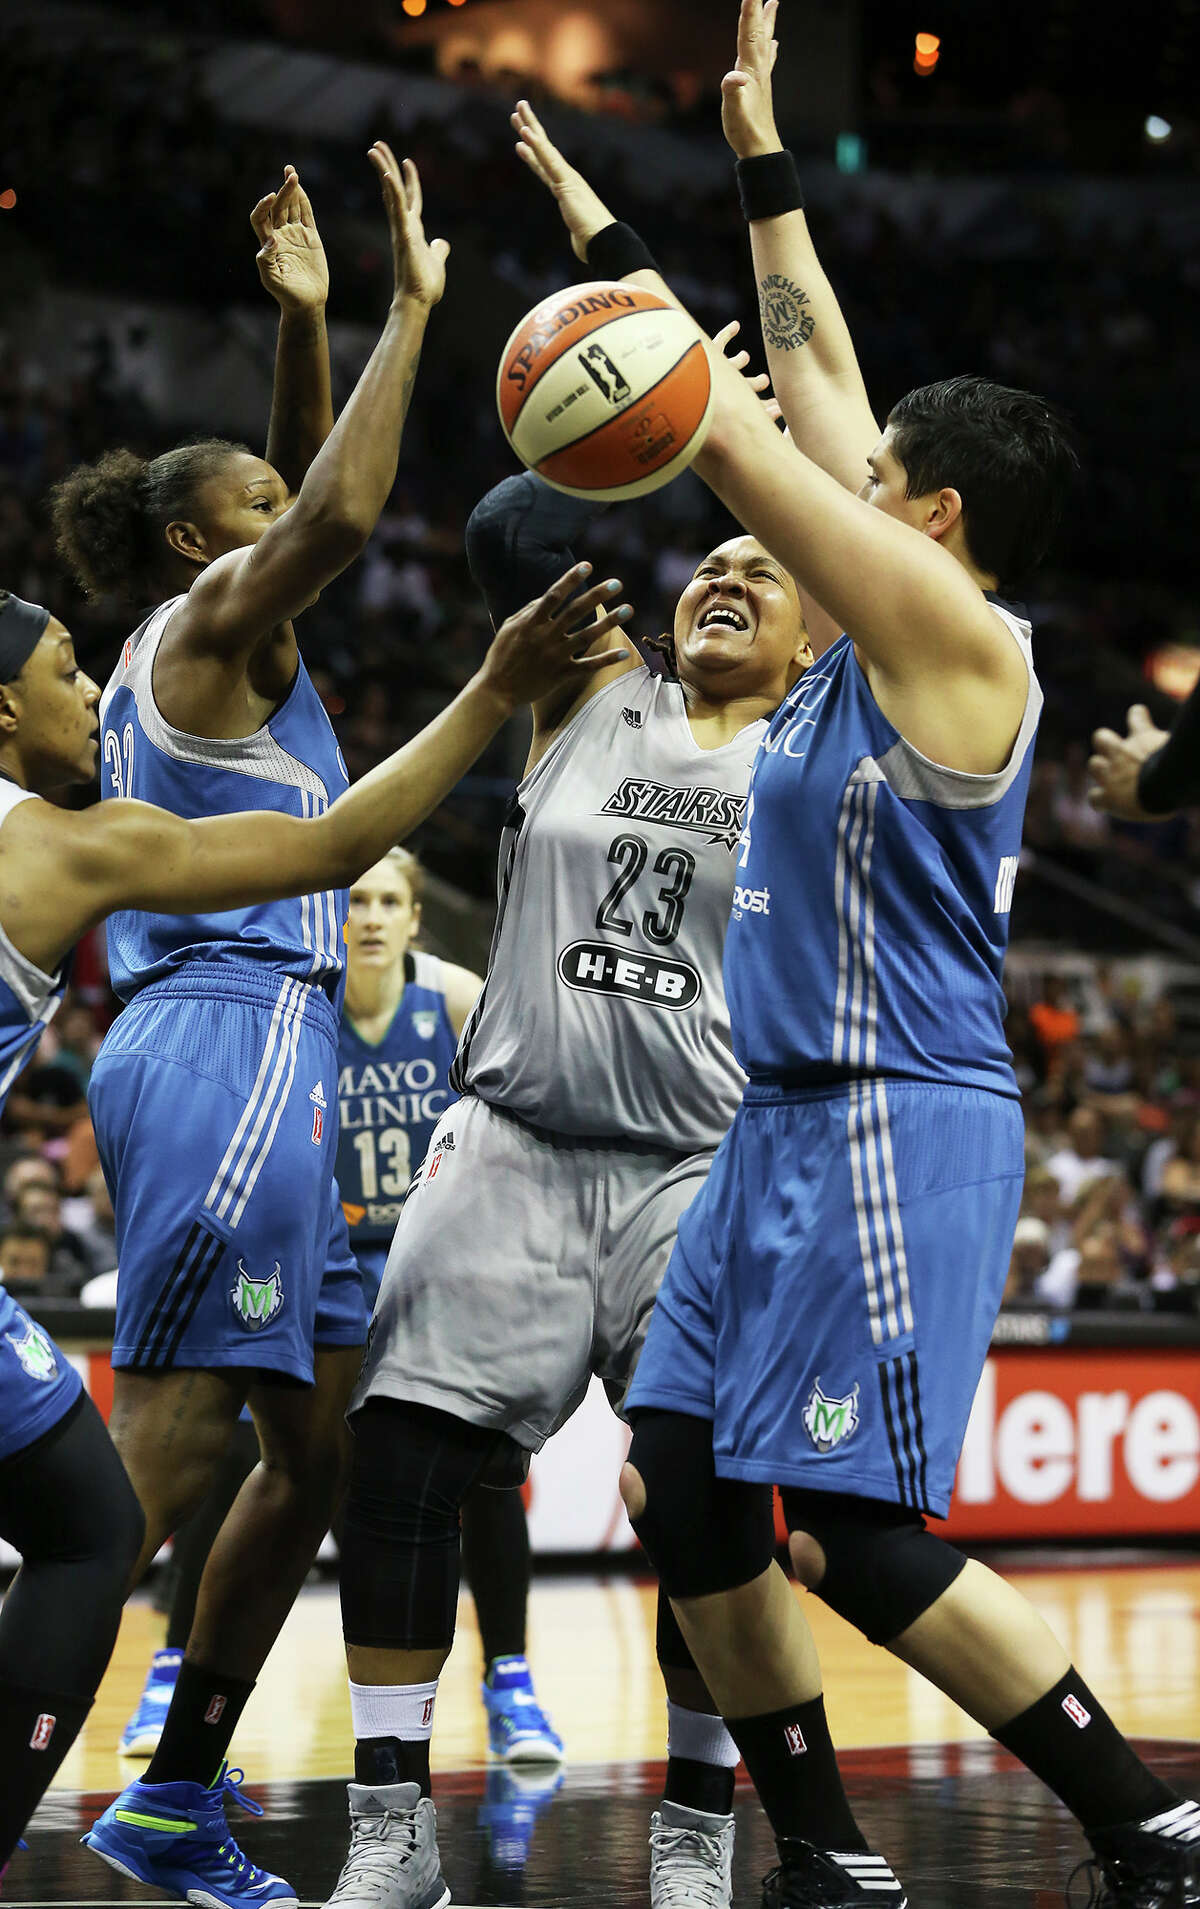 Danielle Robinson faces off against the defense of Janel McCarville (left) and Rebekkah Brunson as the Silver Stars play the Minnesota Lynx at the AT&T Center on July 19, 2013.